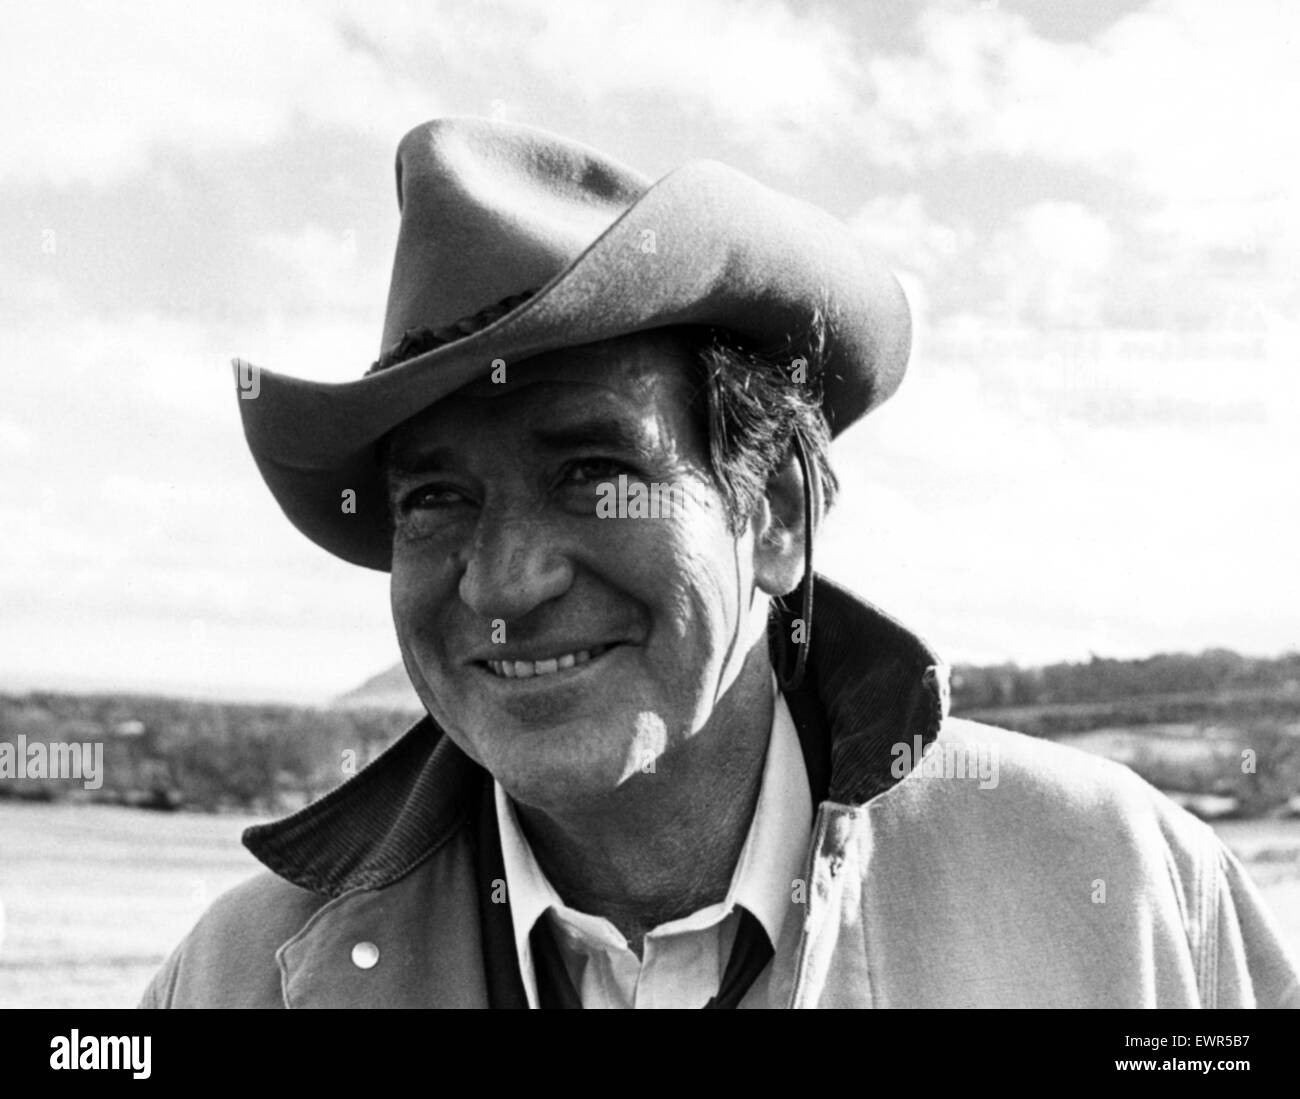 Actor Rod Taylor is pictured during a break in filming whilst on location in Ireland. 25th May 1978. - Stock Image